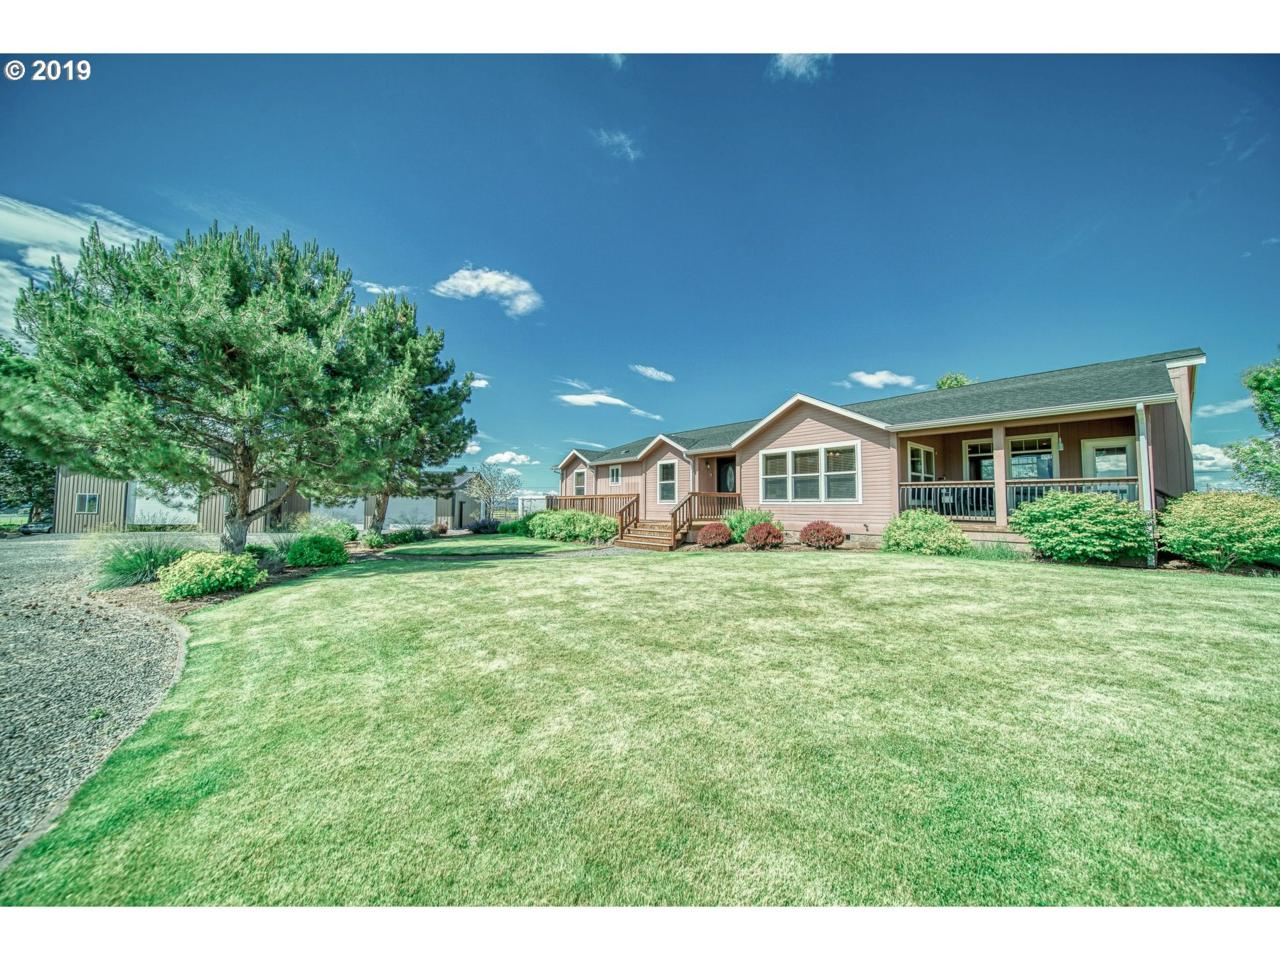 14724 Riggs Rd - Photo 1